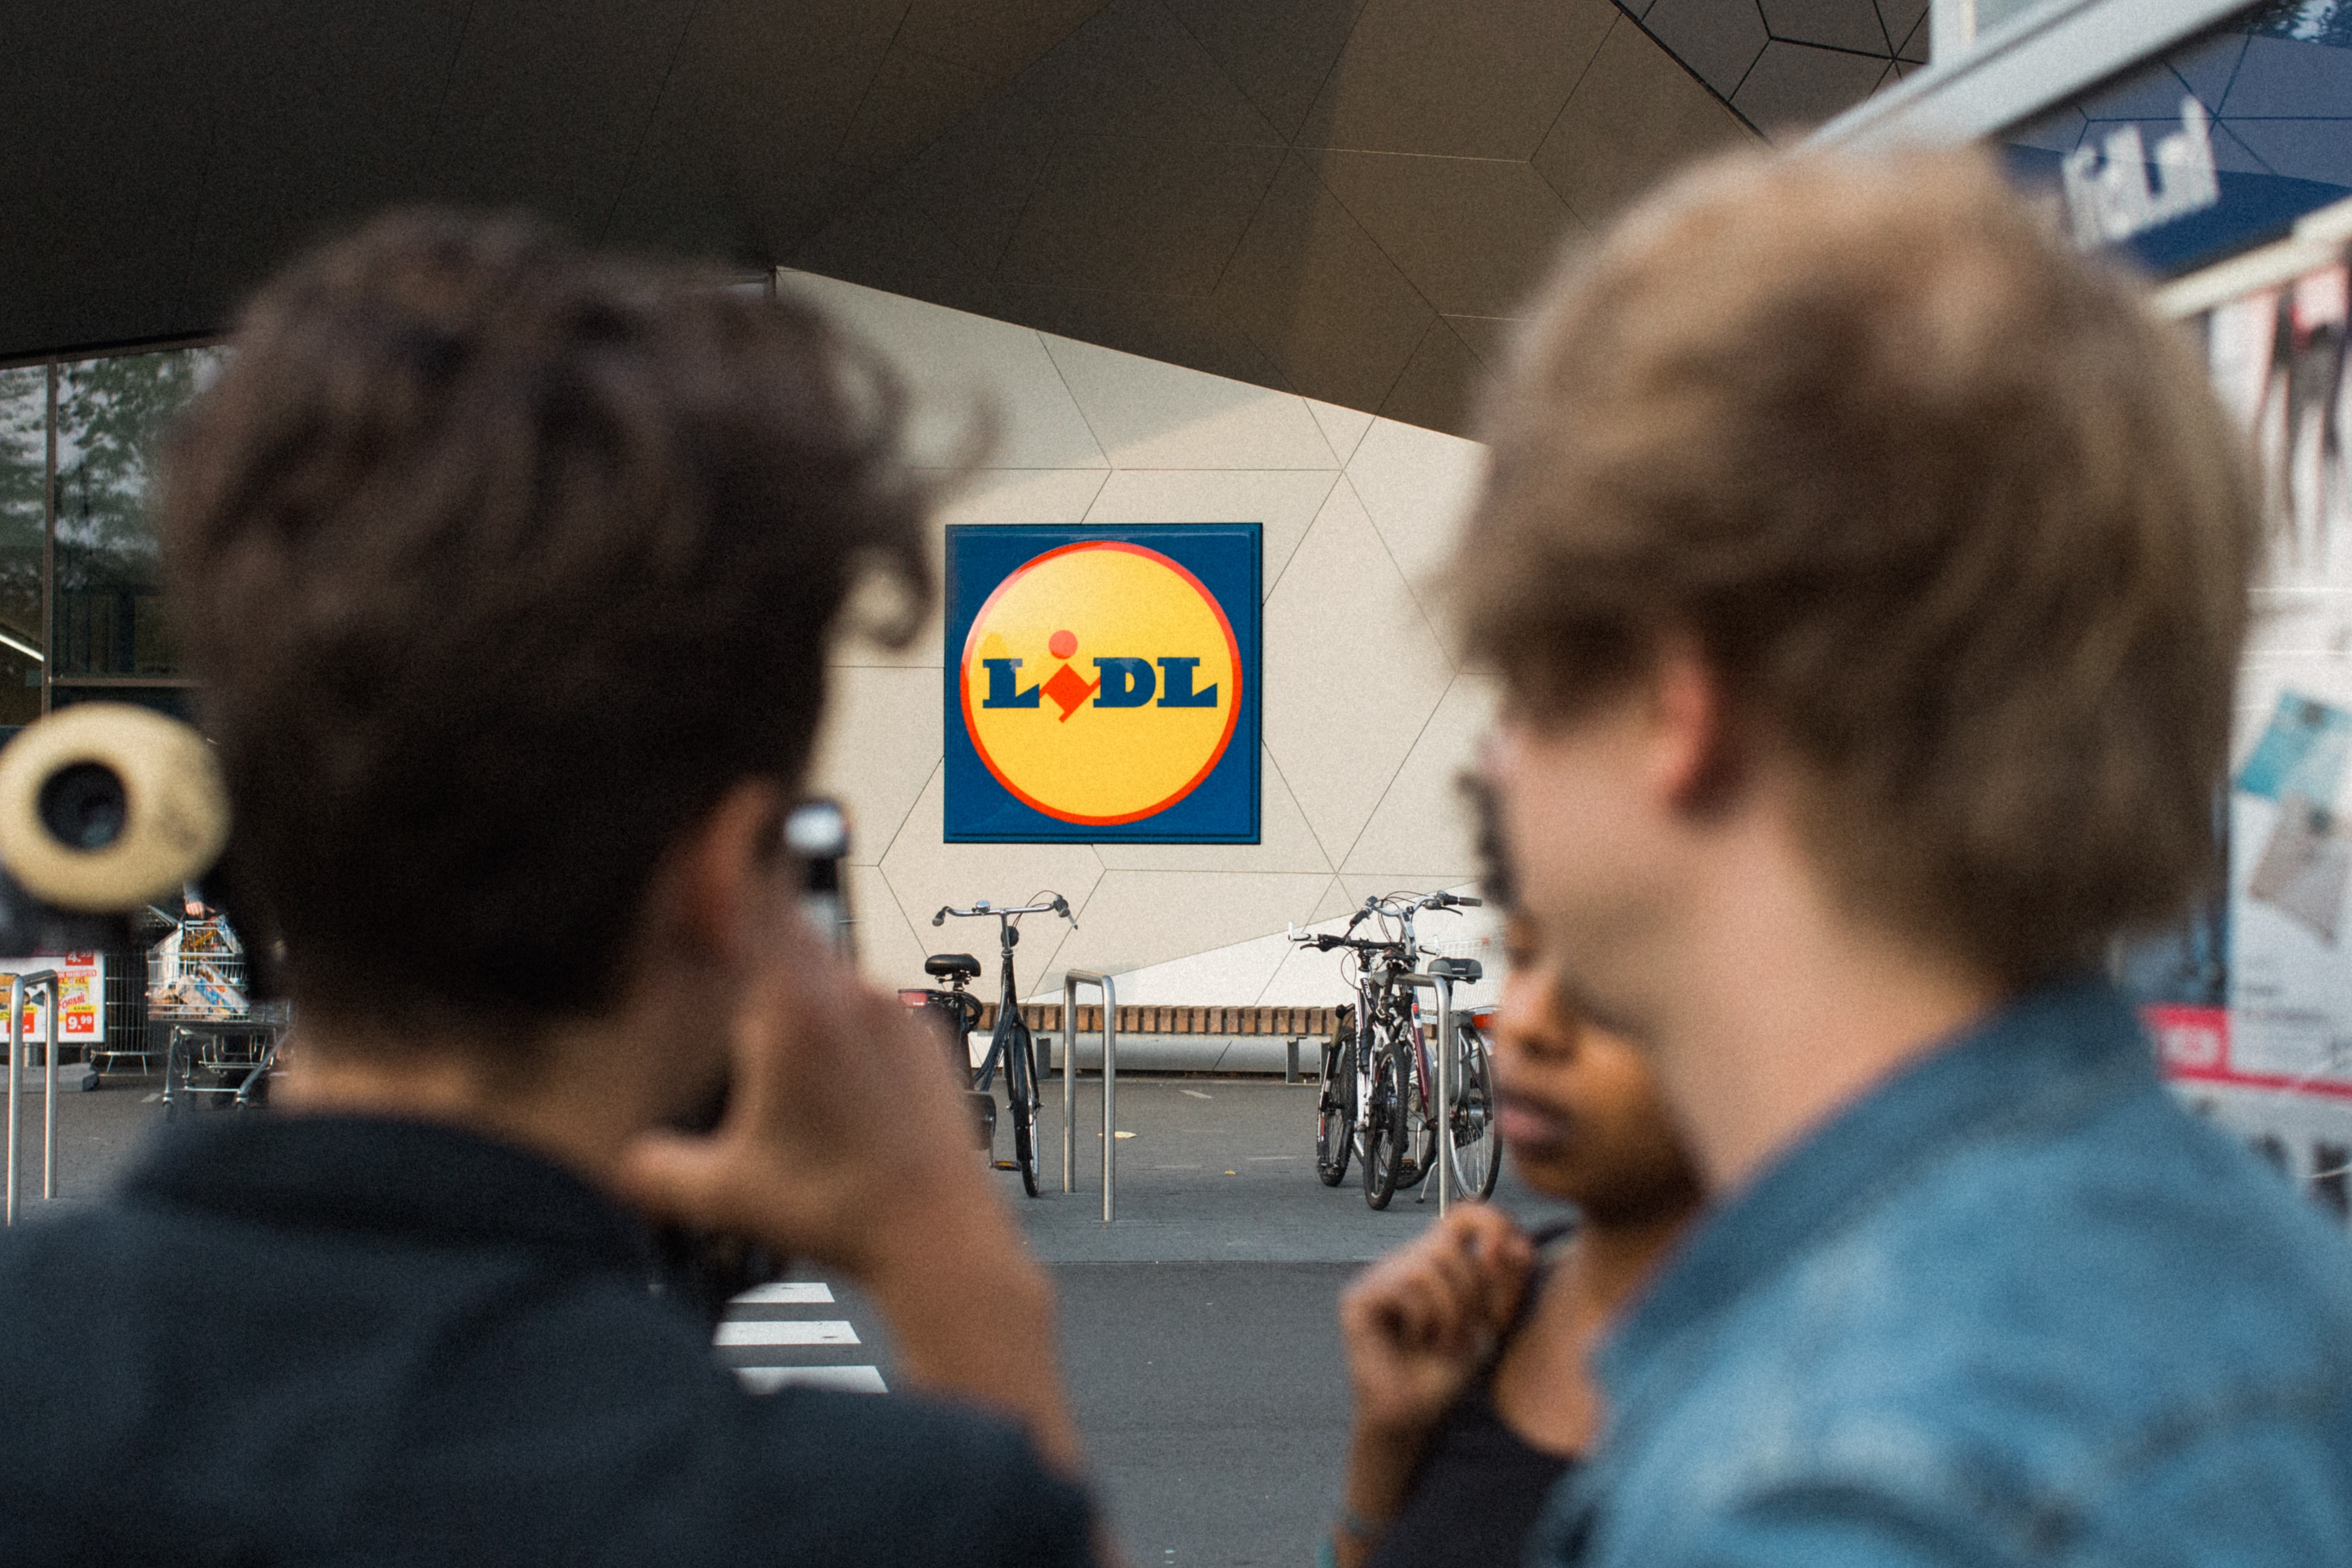 Why Lidl?